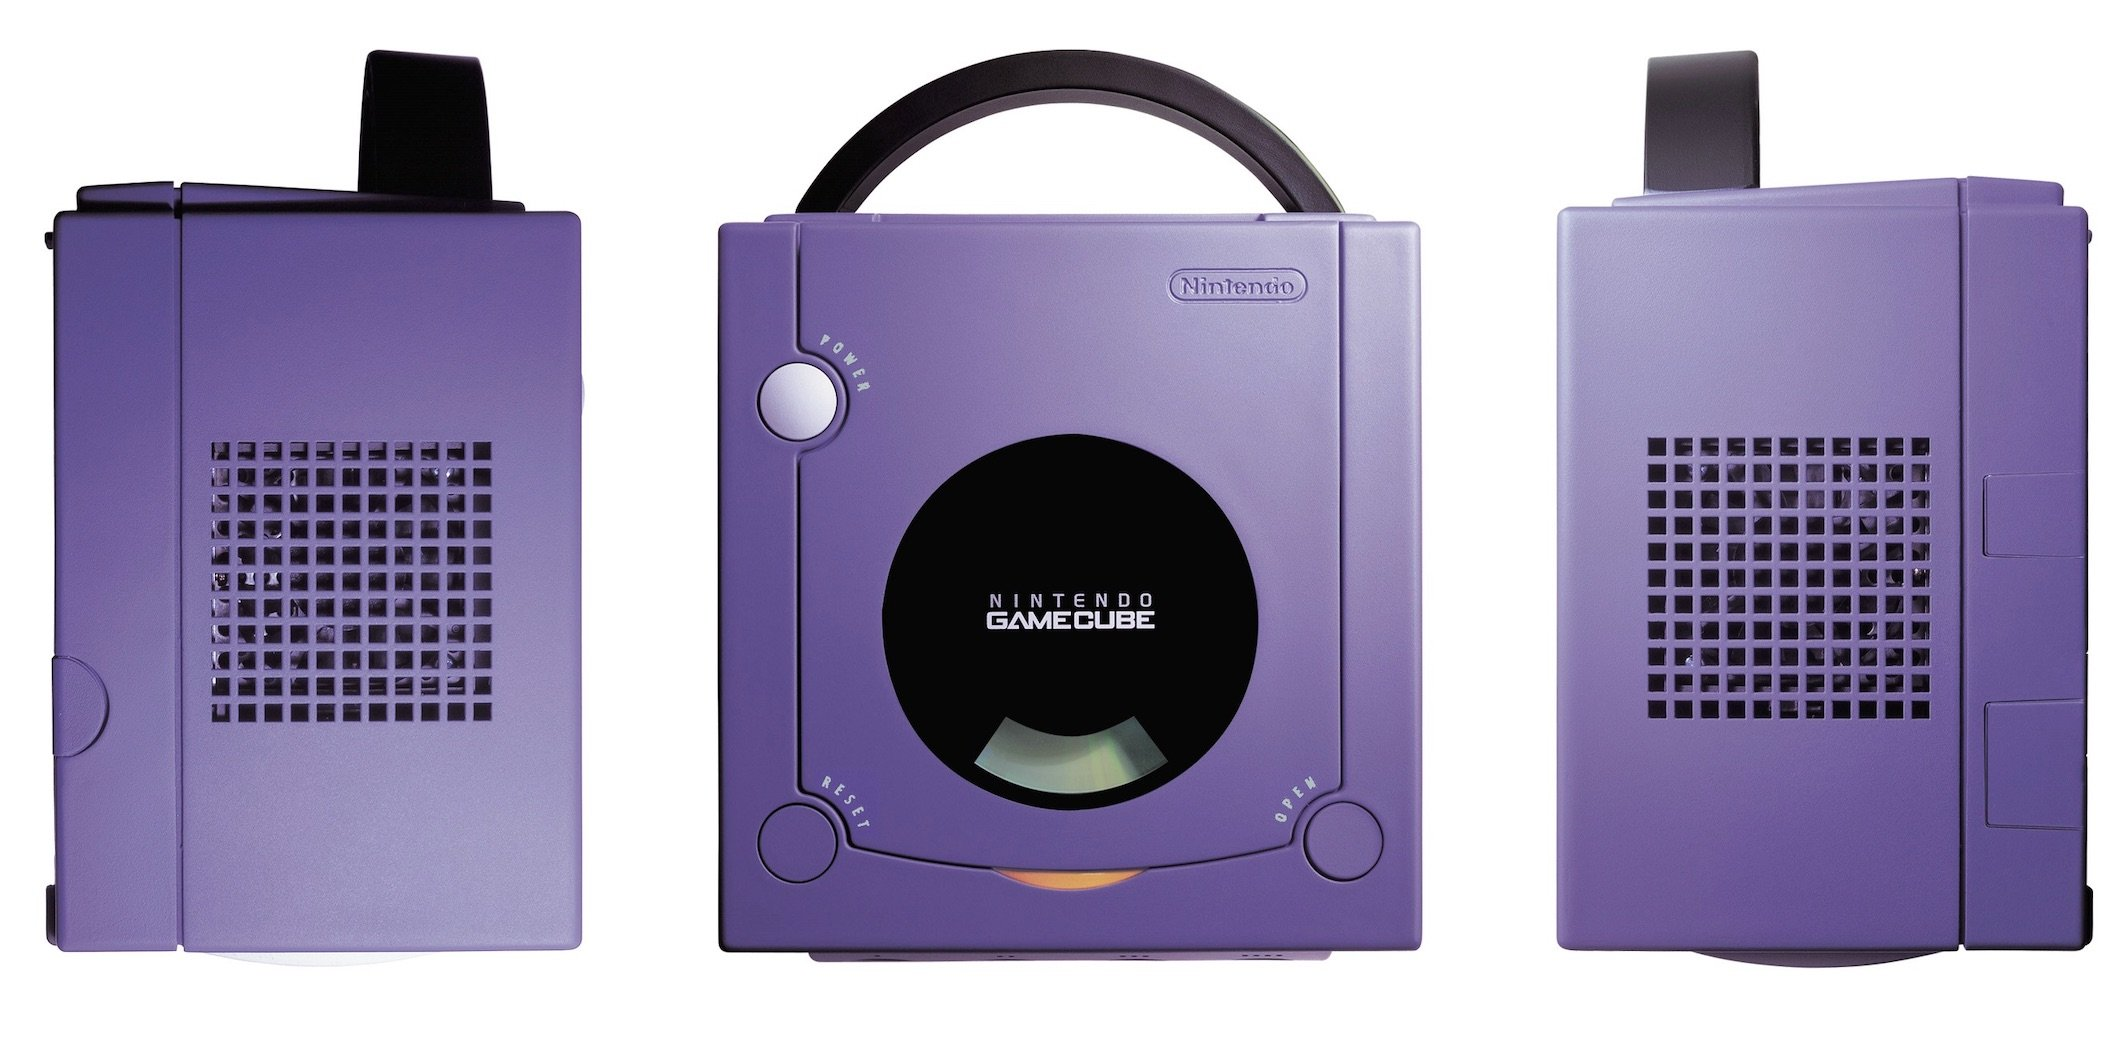 Nintendo's purple powerhouse!